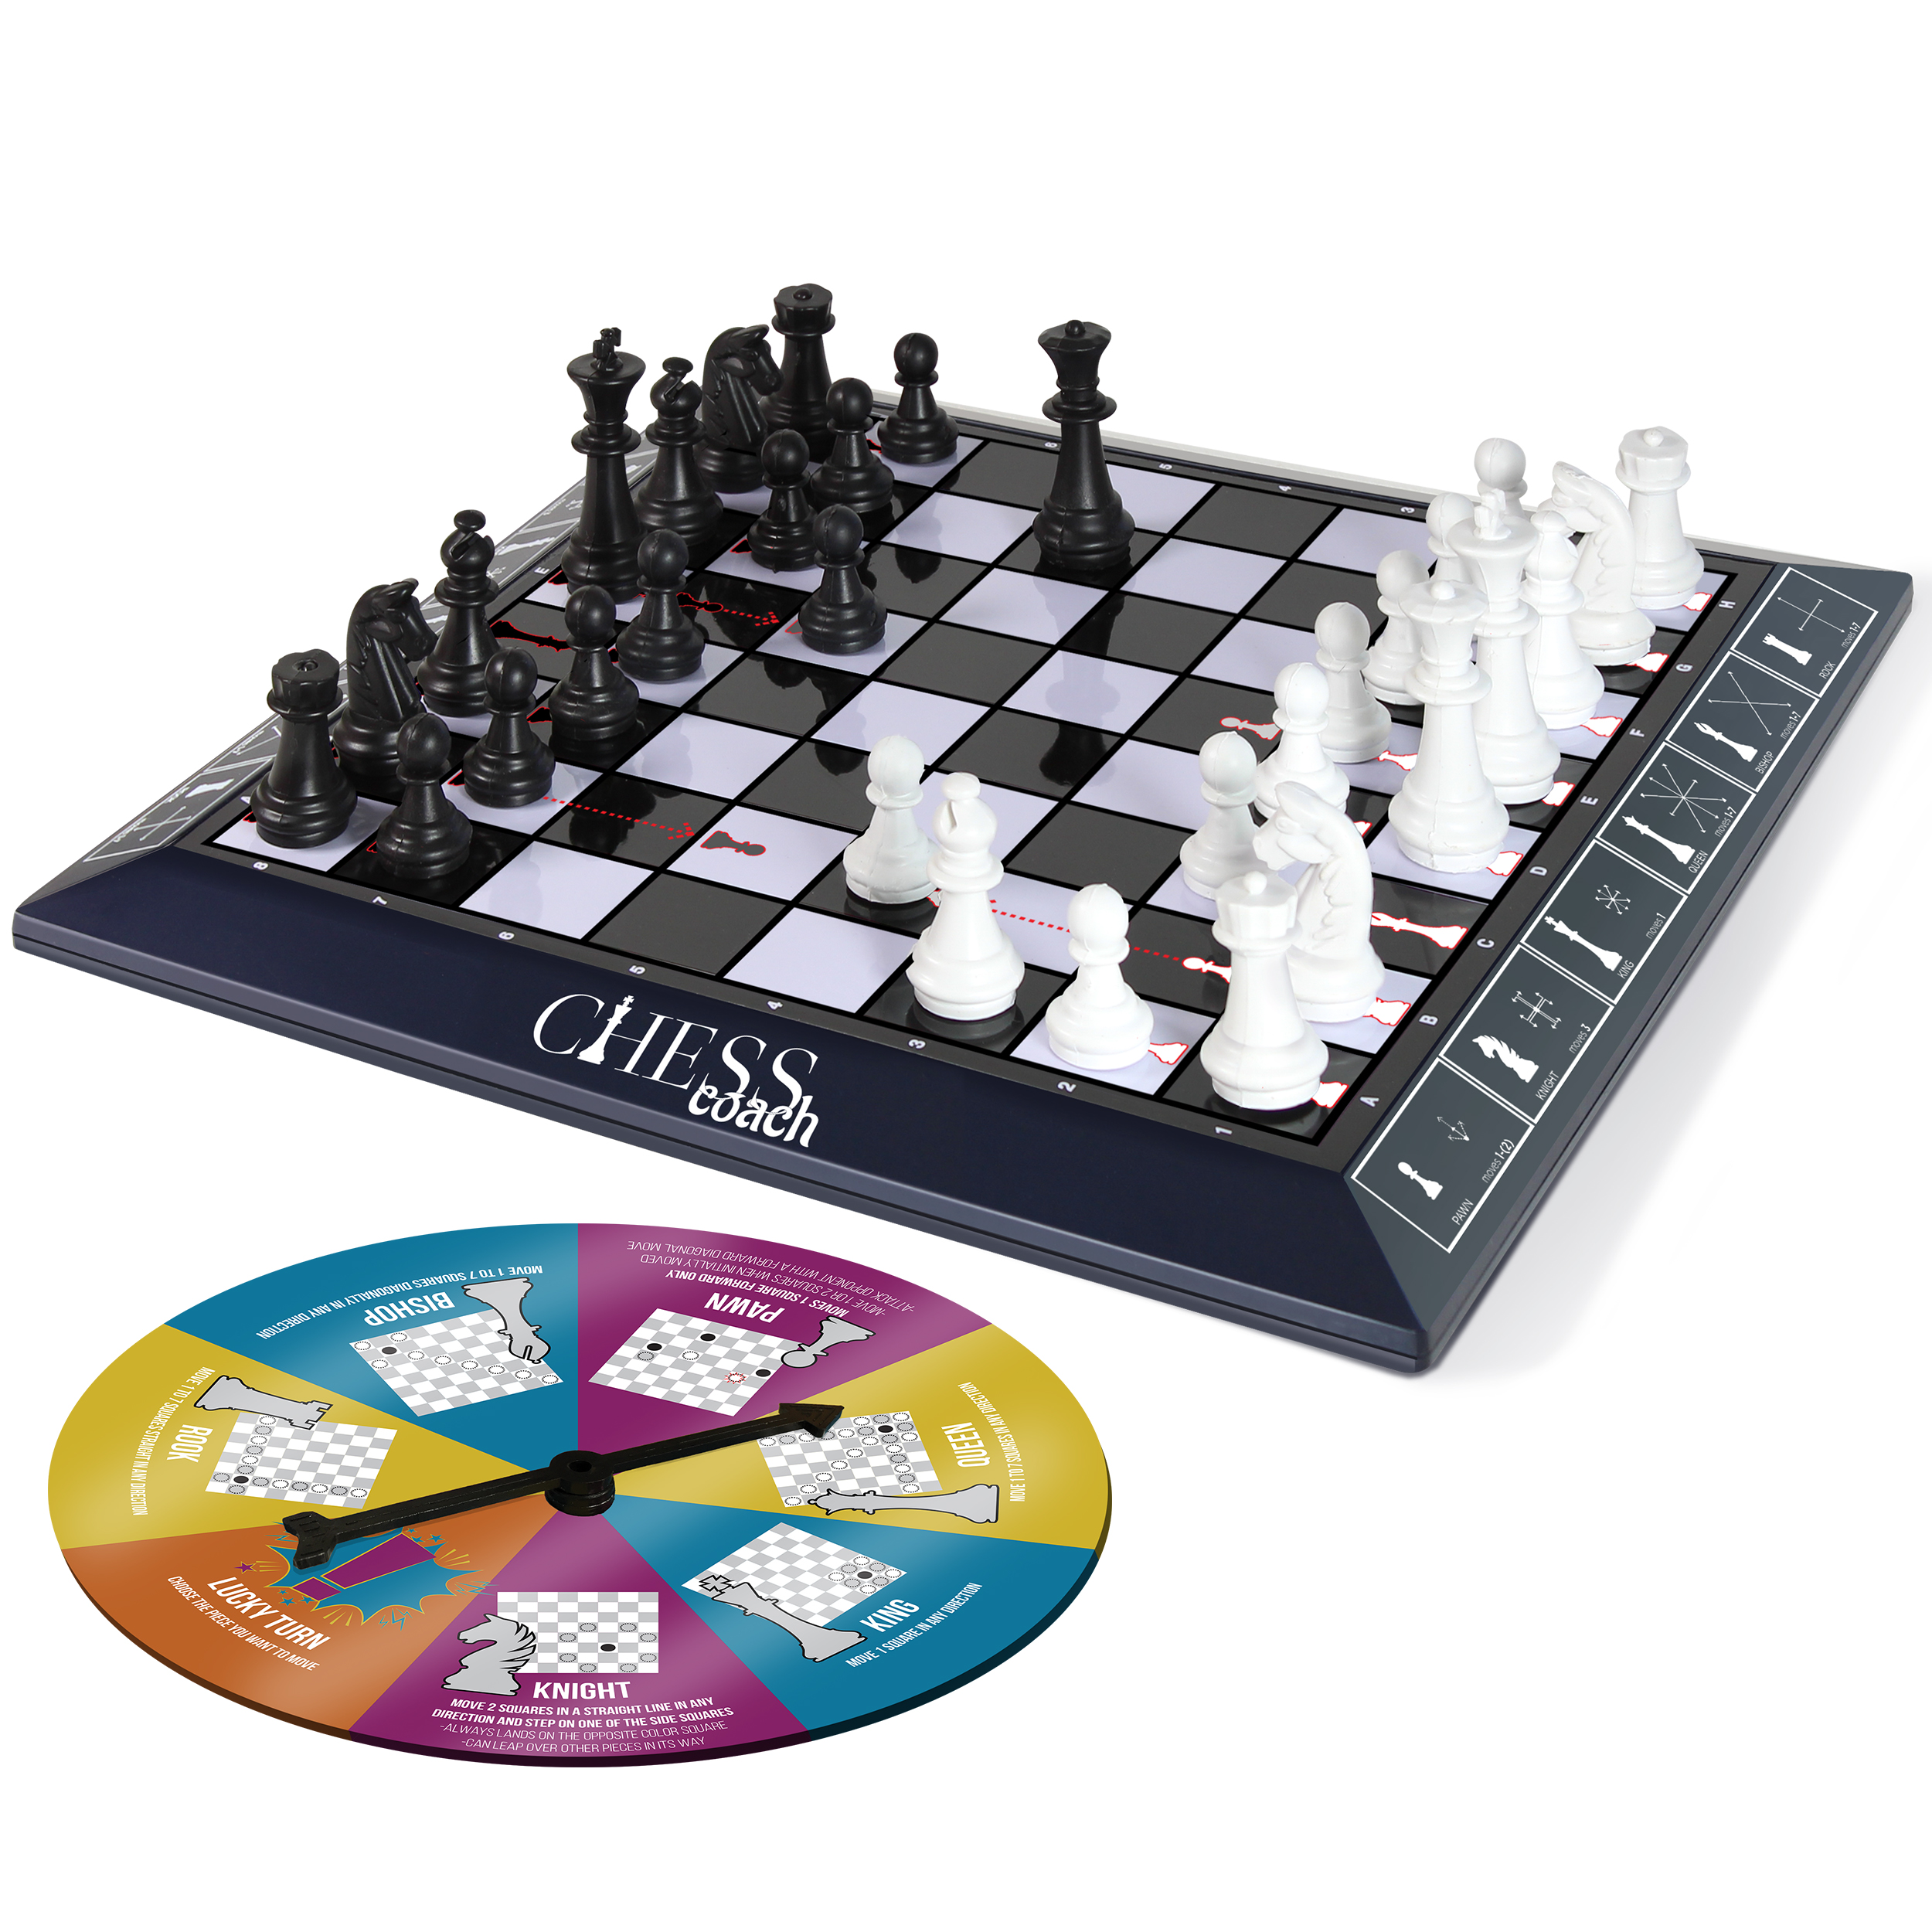 Chess Set Board Game for Kids and Adults with Step-by-Step Teaching Guide for Beginners by